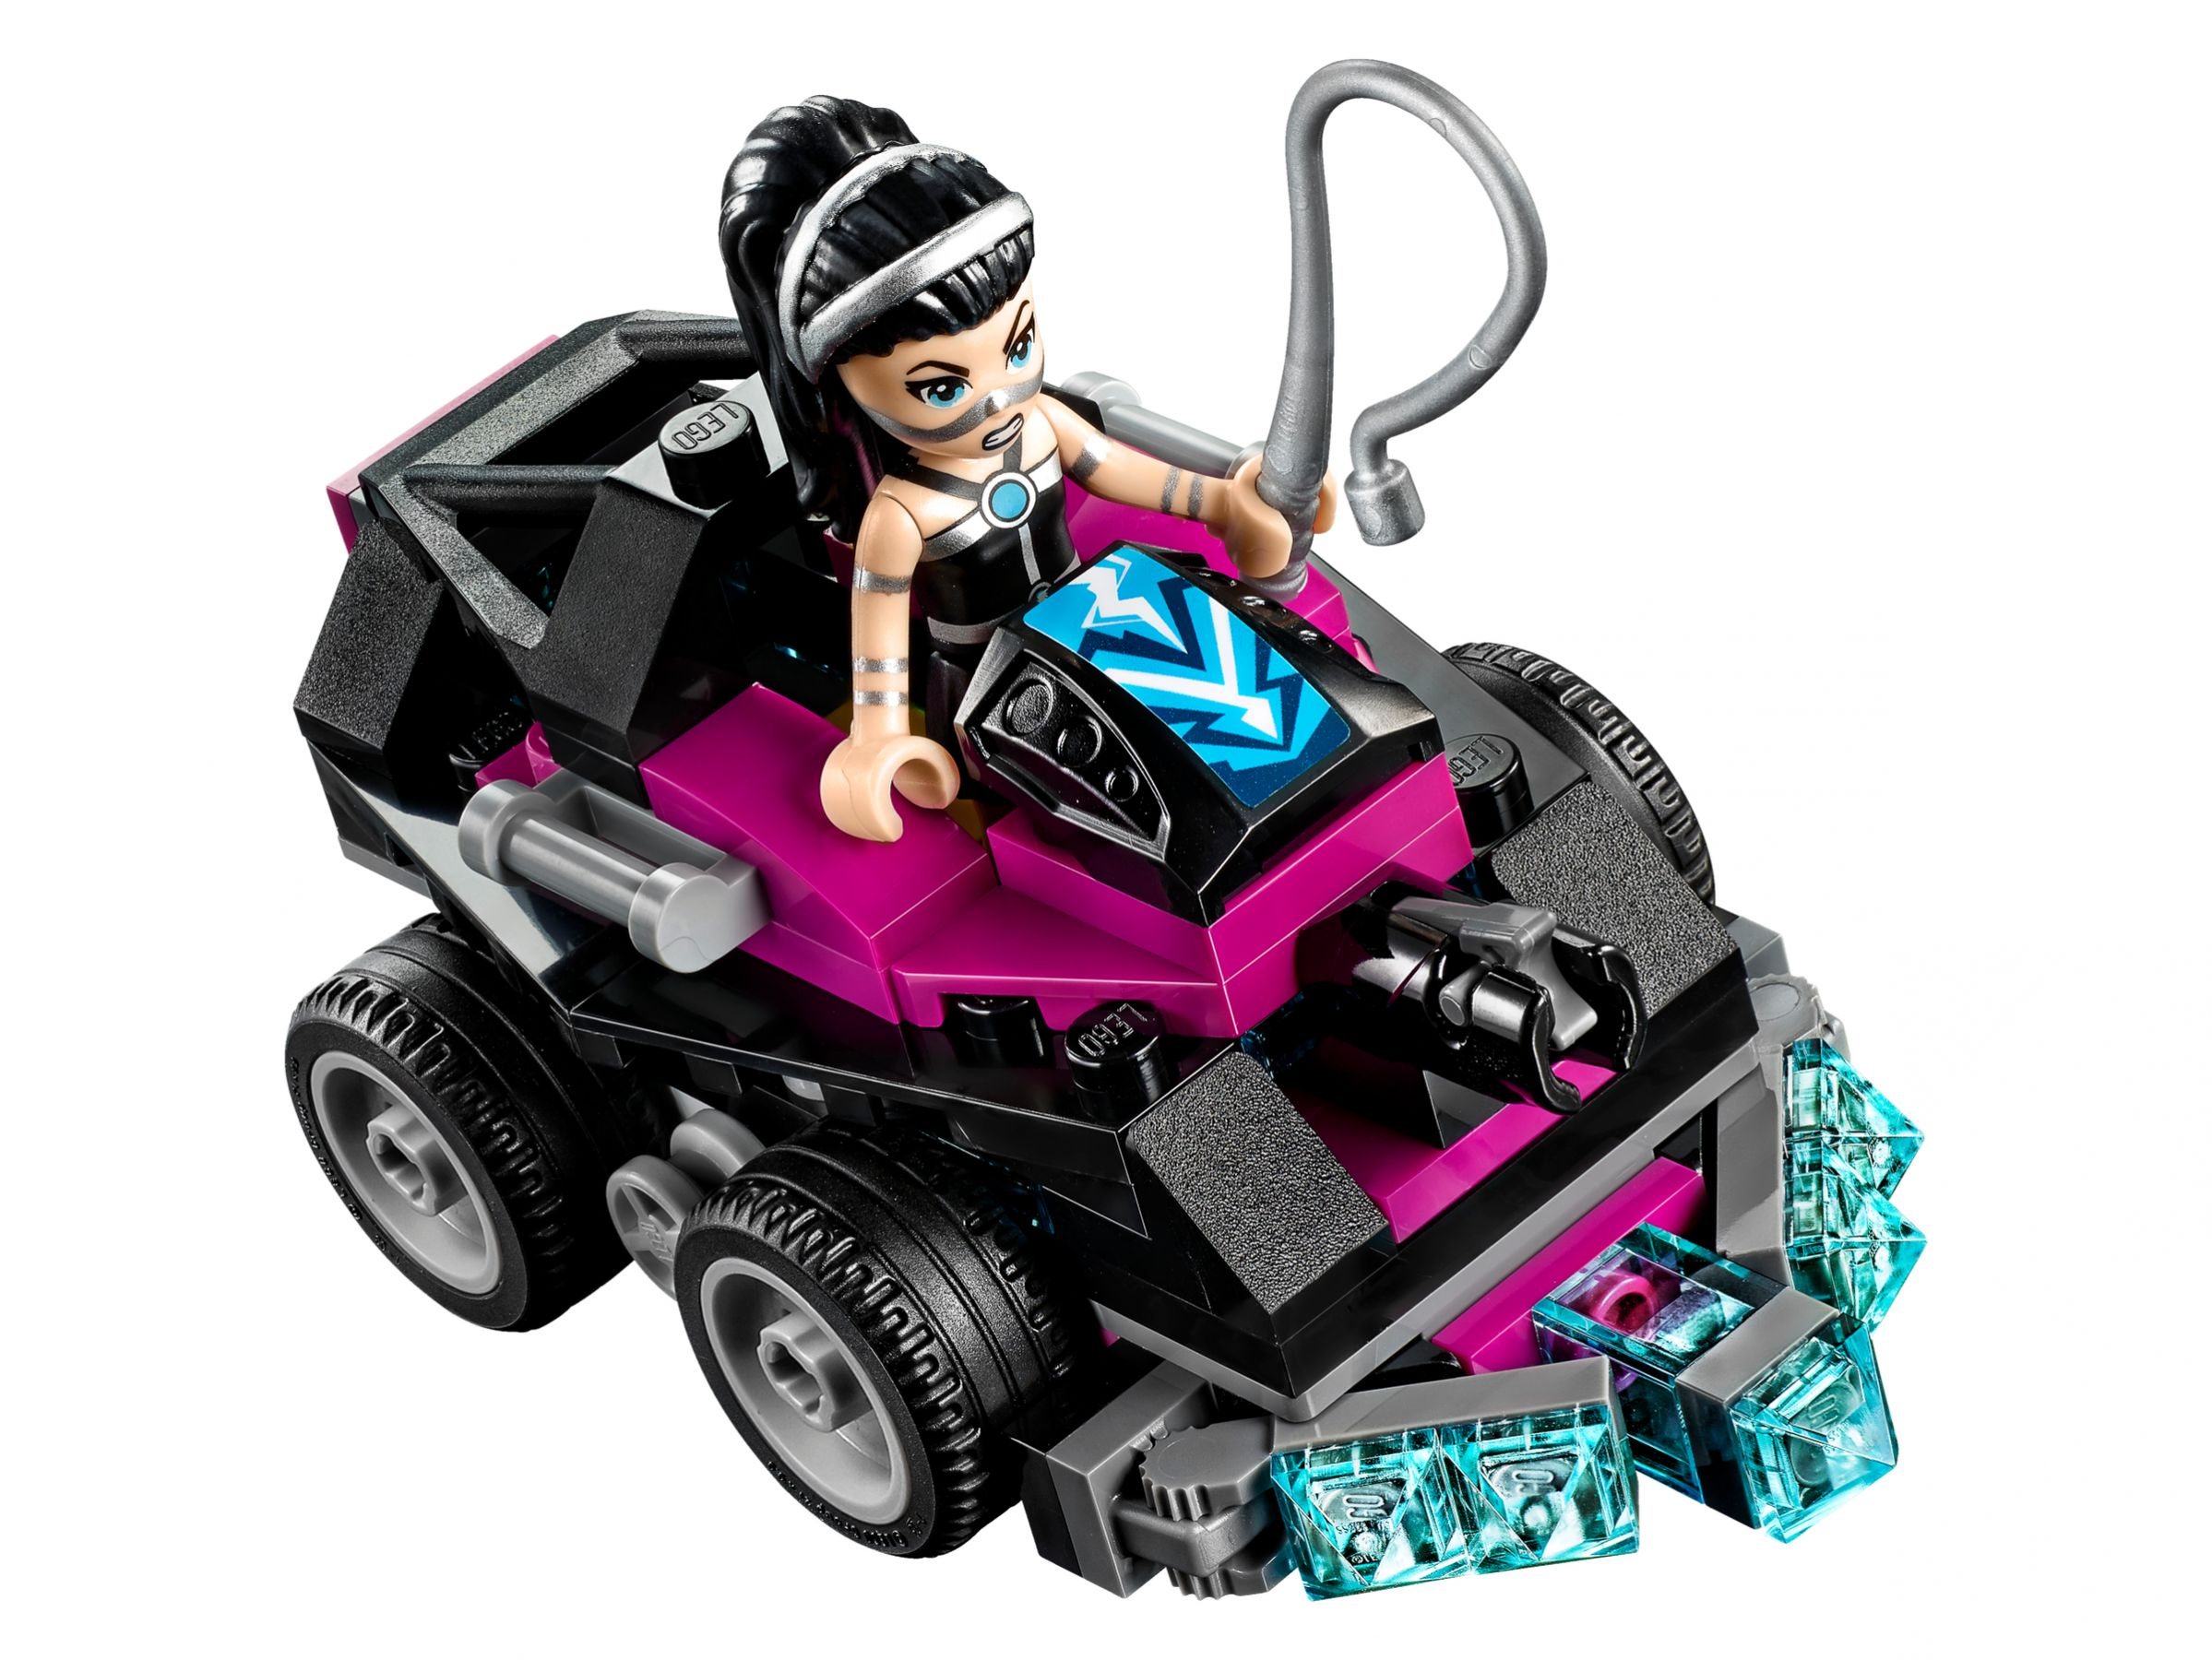 LEGO DC Super Hero Girls 41233 Lashinas Action-Cruiser LEGO_41233_alt2.jpg